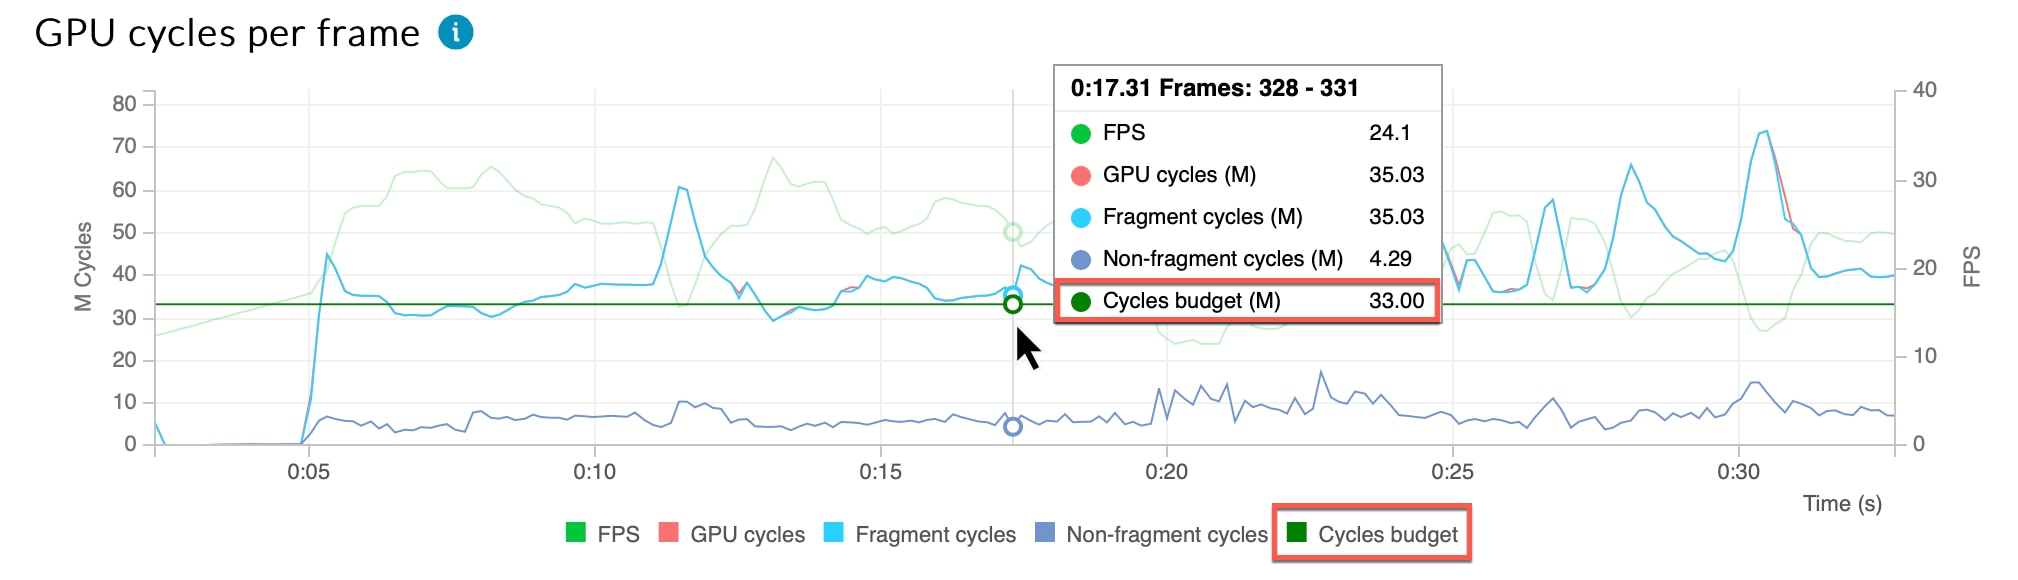 GPU cycles per frame chart with a cycles budget of 33 million cycles per frame